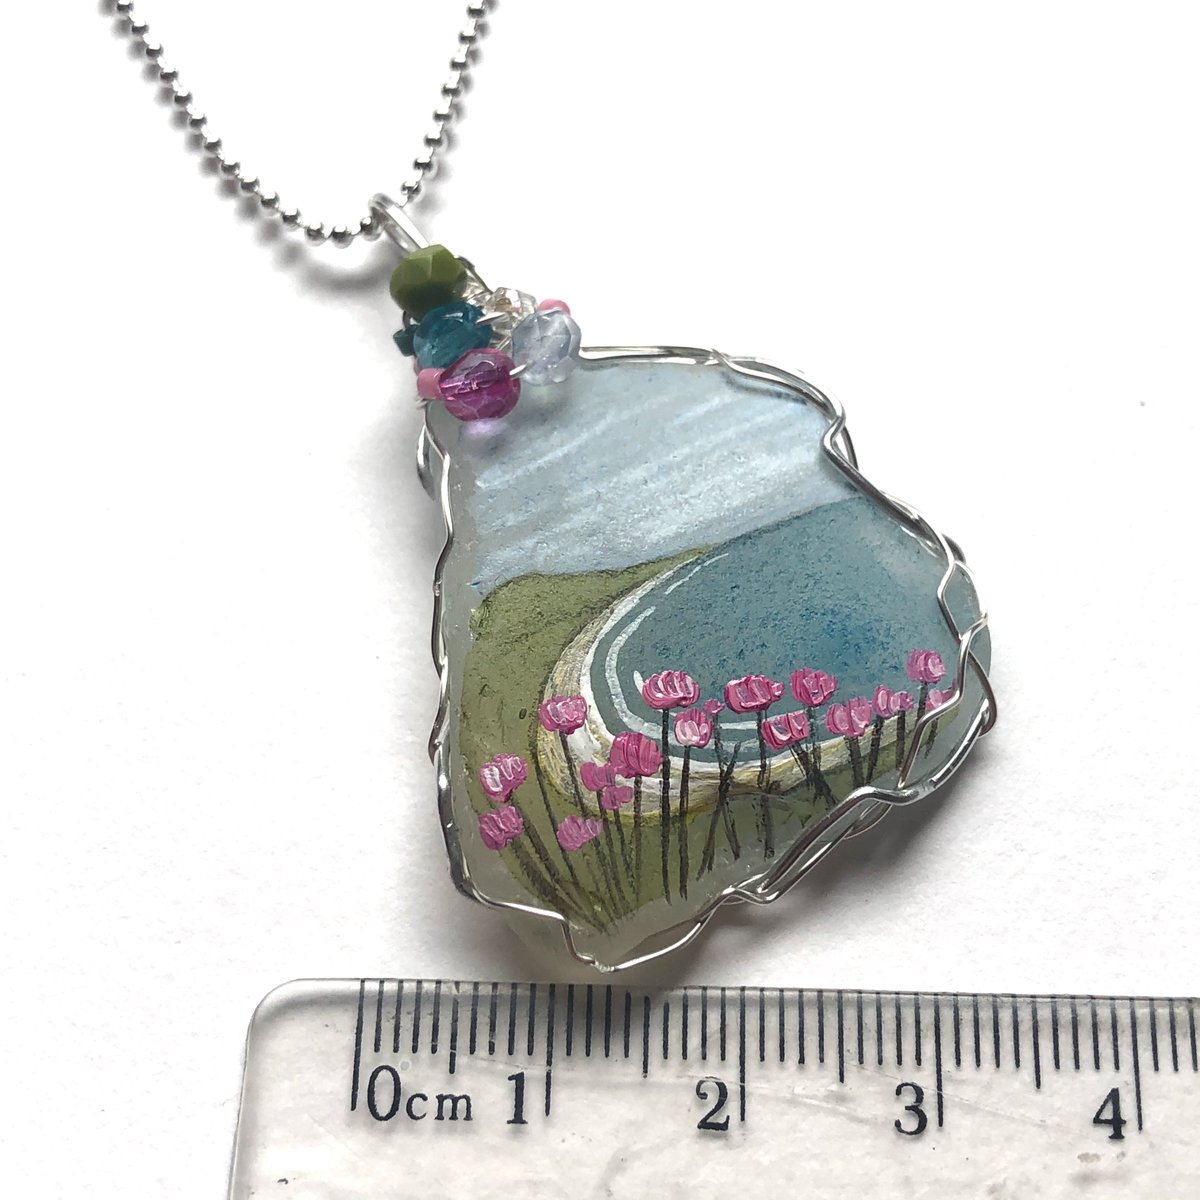 """Check out Pink thrift summer beach hand painted English sea glass necklace - 18"""" chain #Handmade https://ebay.us/f0x1tc via @eBaypic.twitter.com/jagGt4e8fJ"""